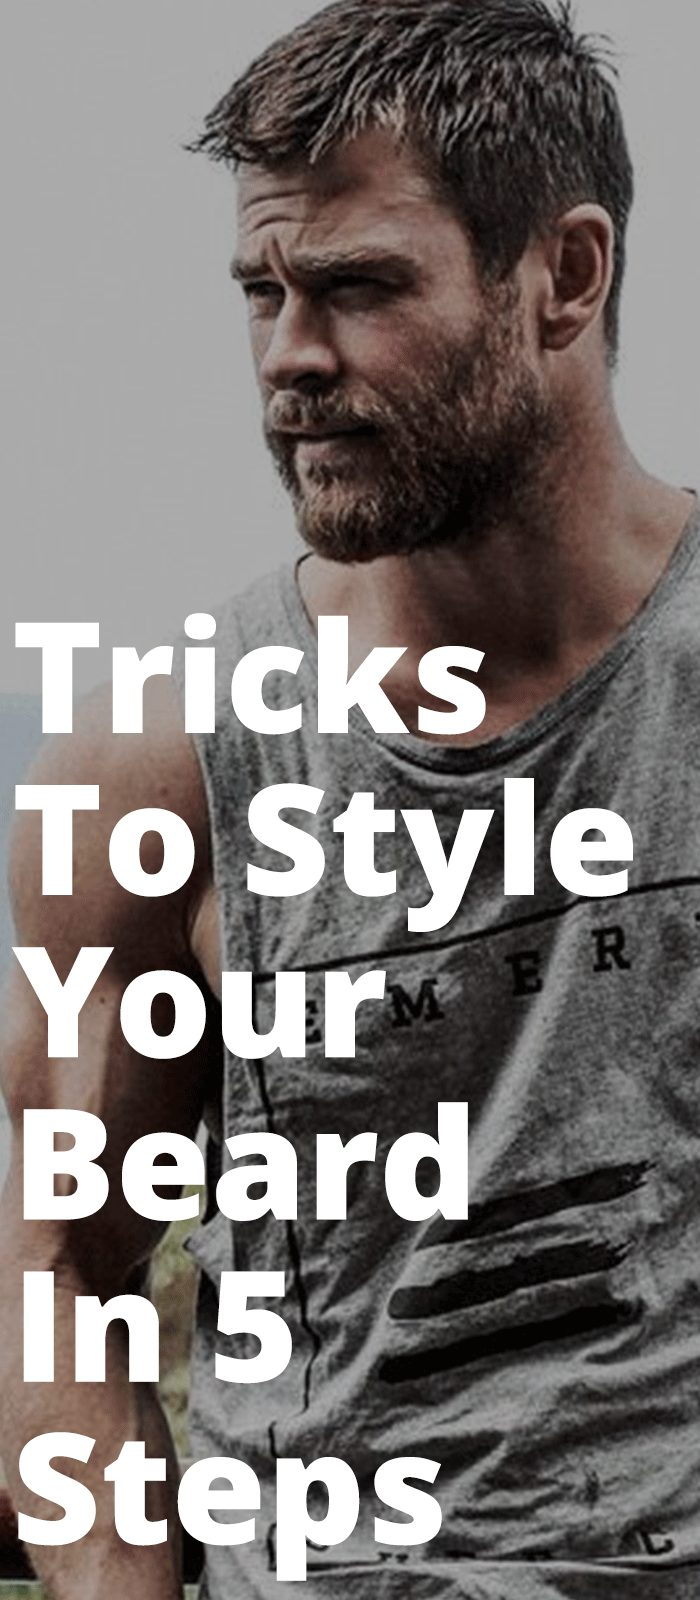 Tricks To Style Your Beard In 5 Steps